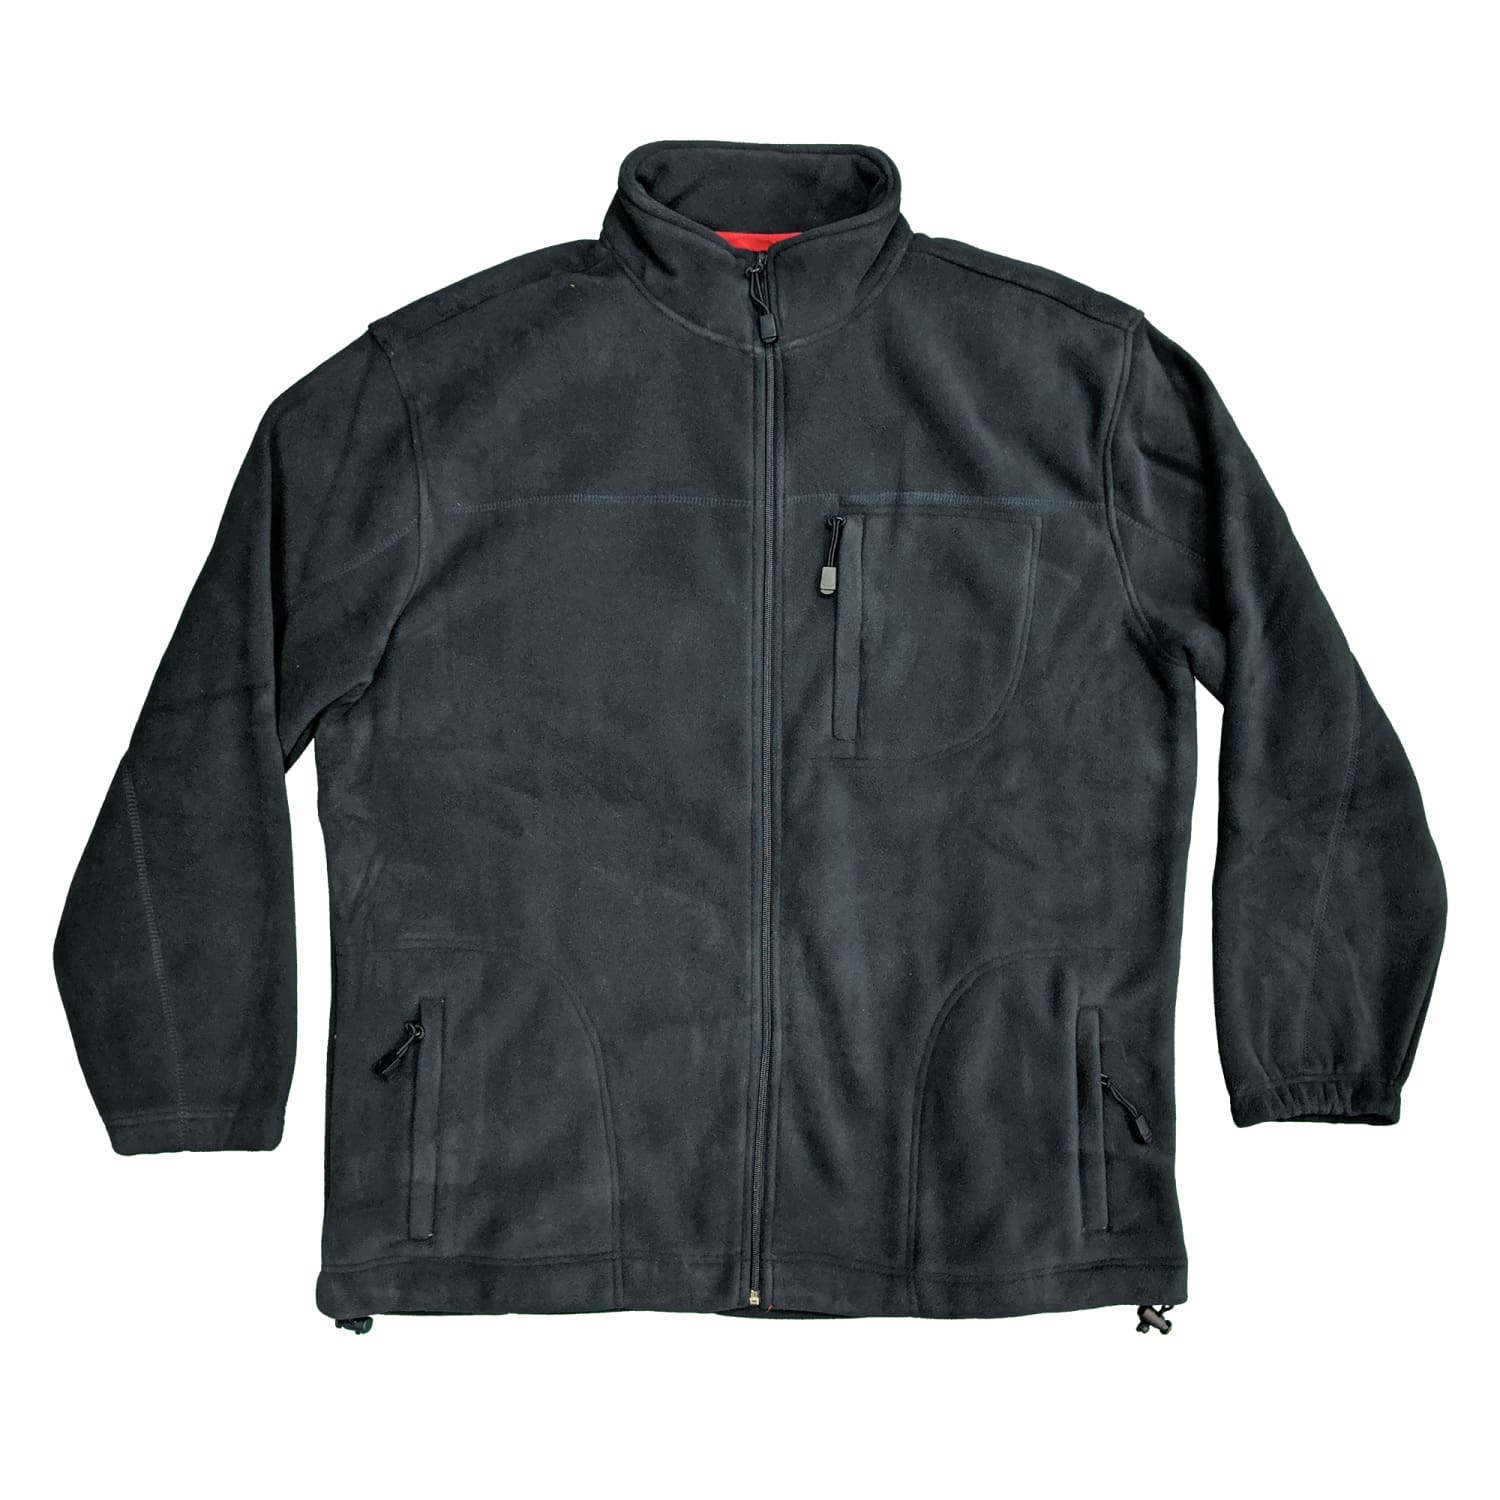 Espionage Full Zip Fleece - FL014 - Navy 1